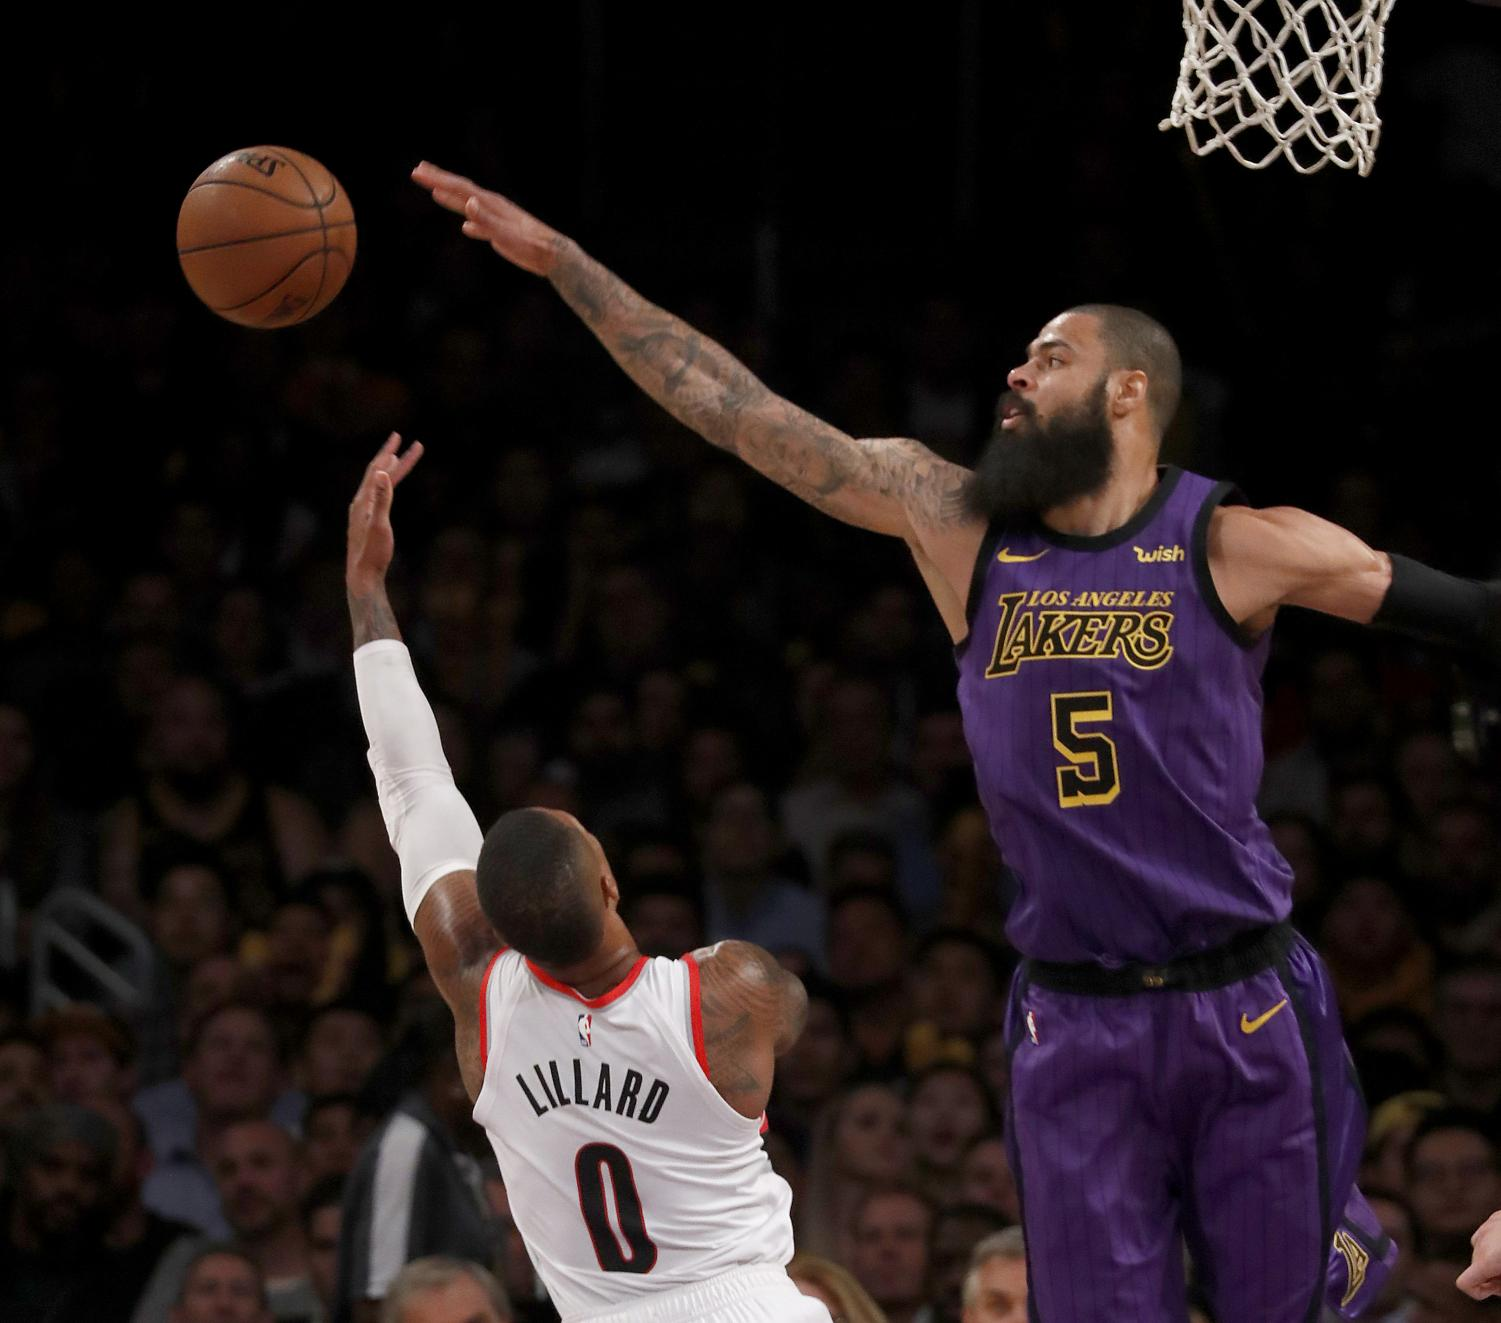 The Los Angeles Lakers' Tyson Chandler (5) blocks a shot by the Portland Trailblazers' Damian Lillard in the second quarter on Wednesday, Nov. 14, 2018, at Staples Center in Los Angeles. The Lakers won, 126-117. (LuisSinco/Los Angeles Times/TNS)